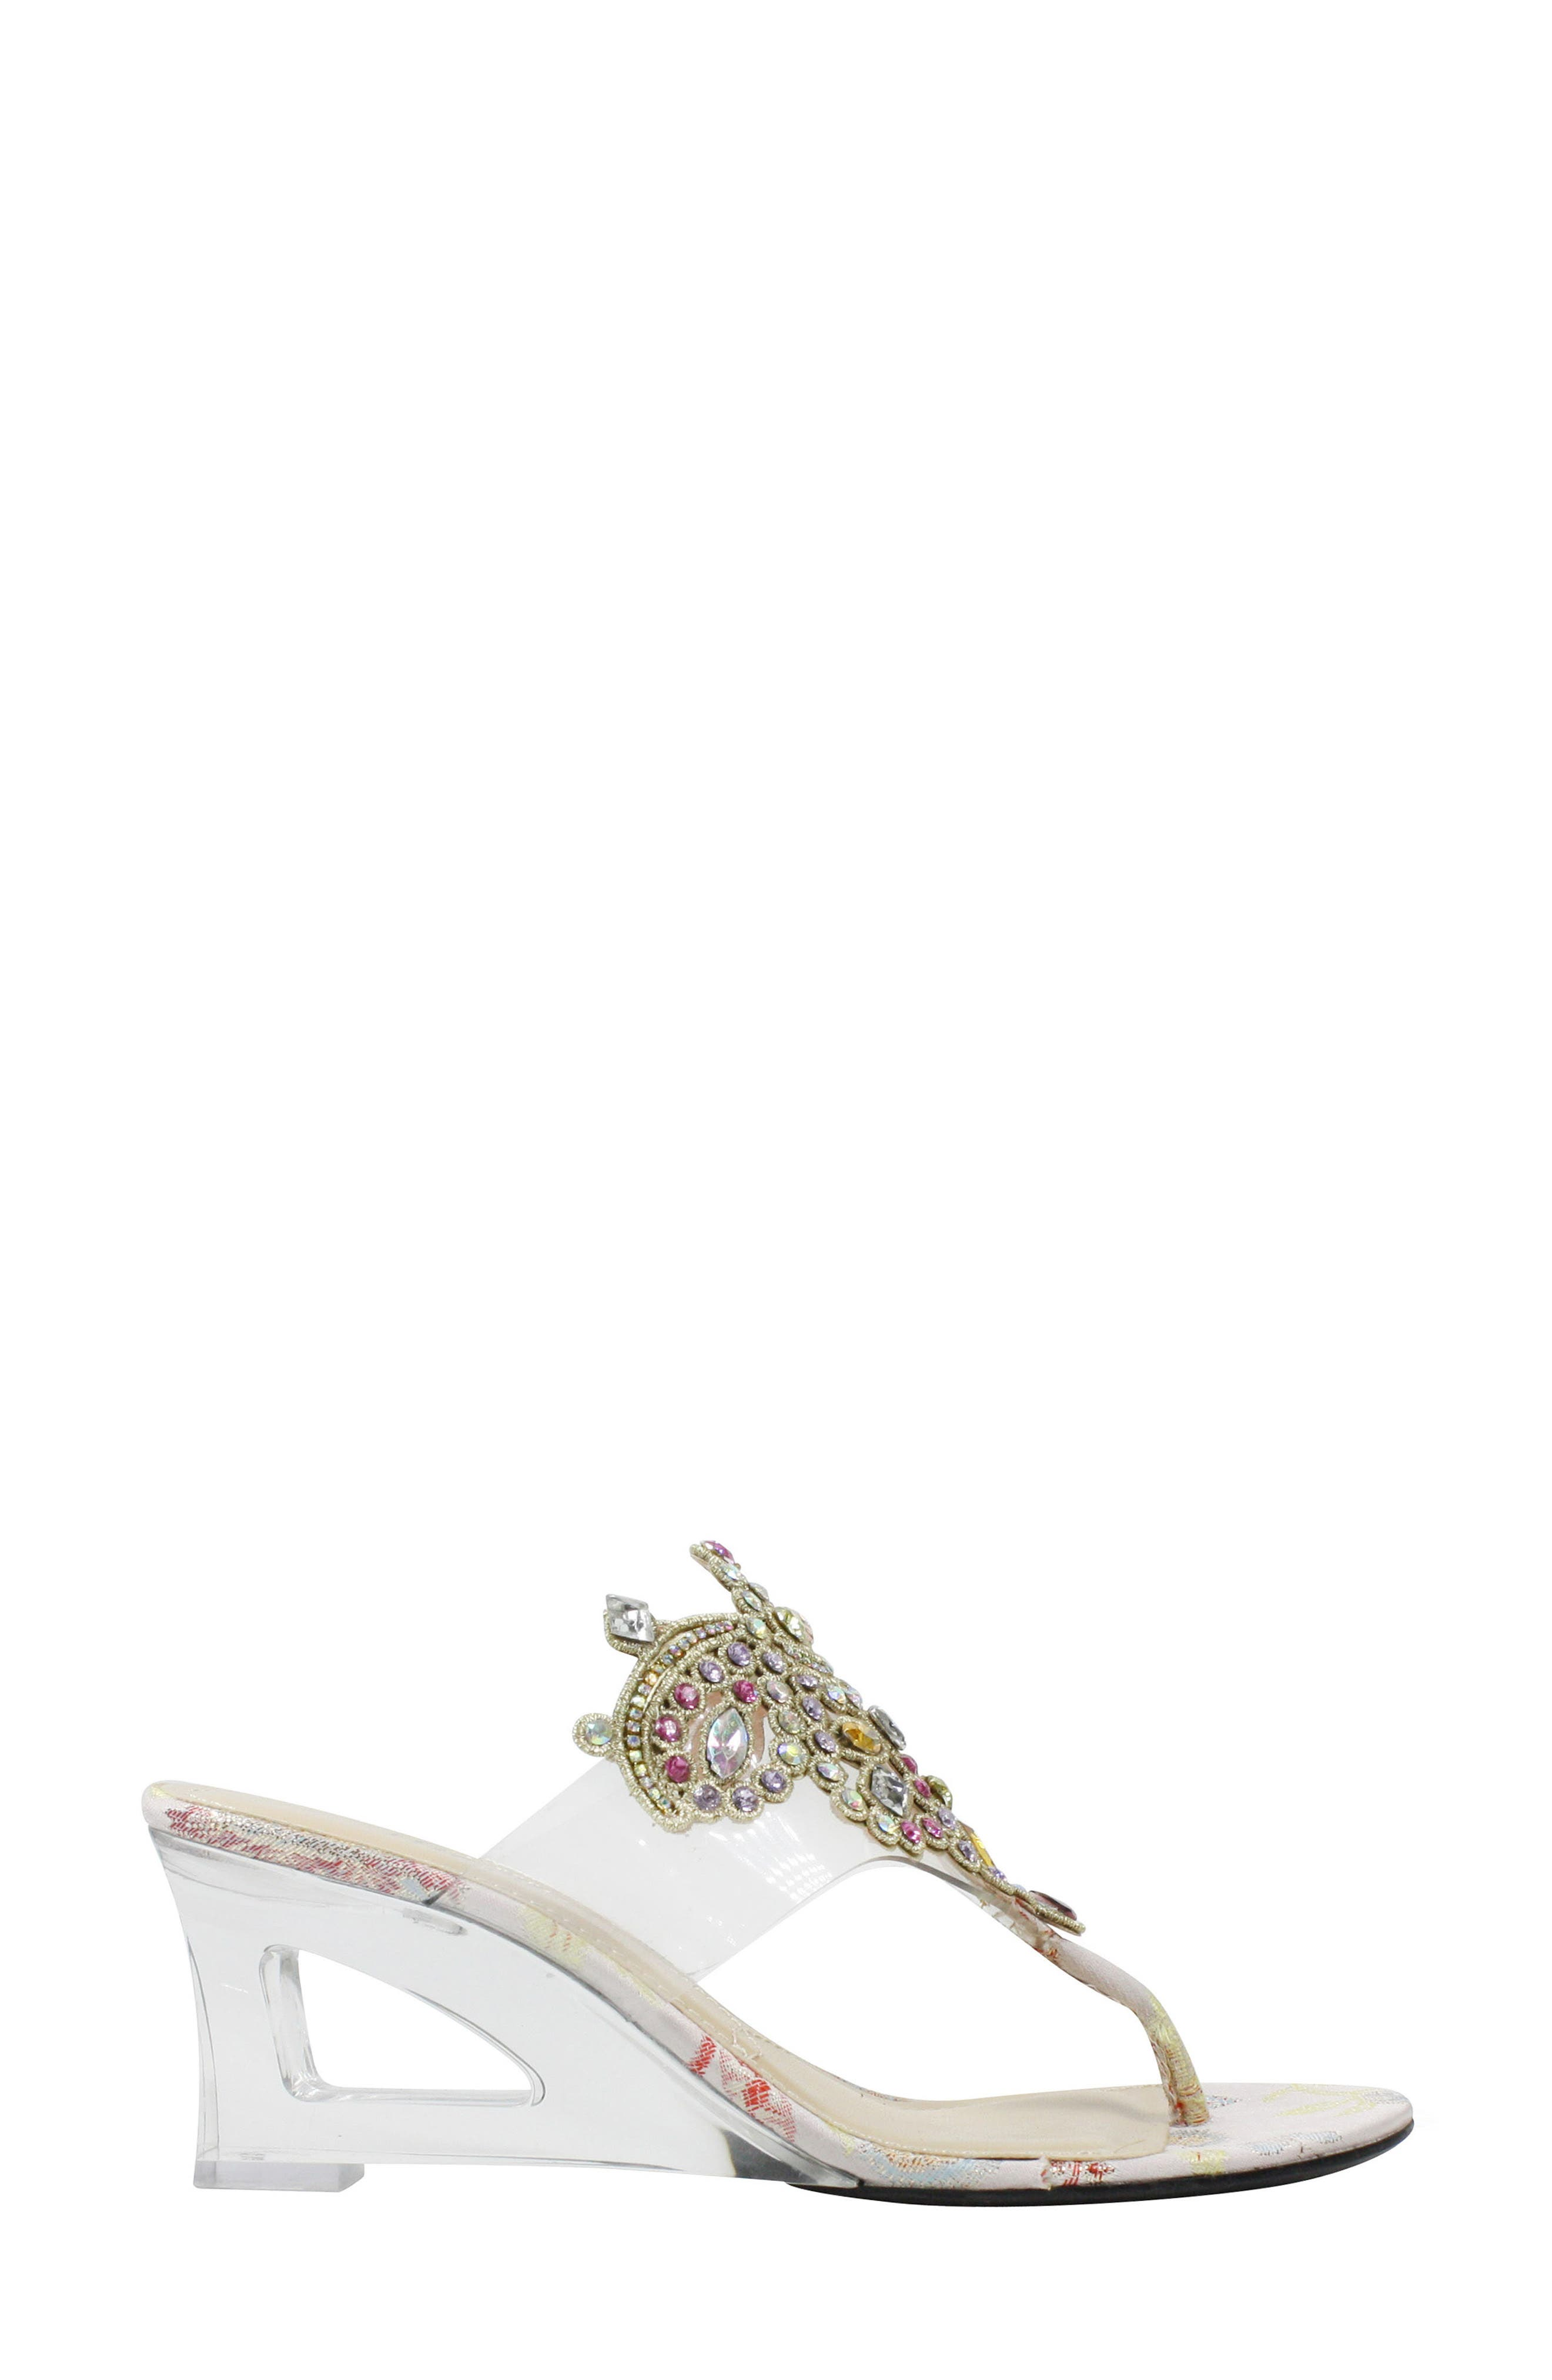 Victorina Embellished Wedge Mule,                             Alternate thumbnail 3, color,                             CLEAR/ PASTEL FABRIC